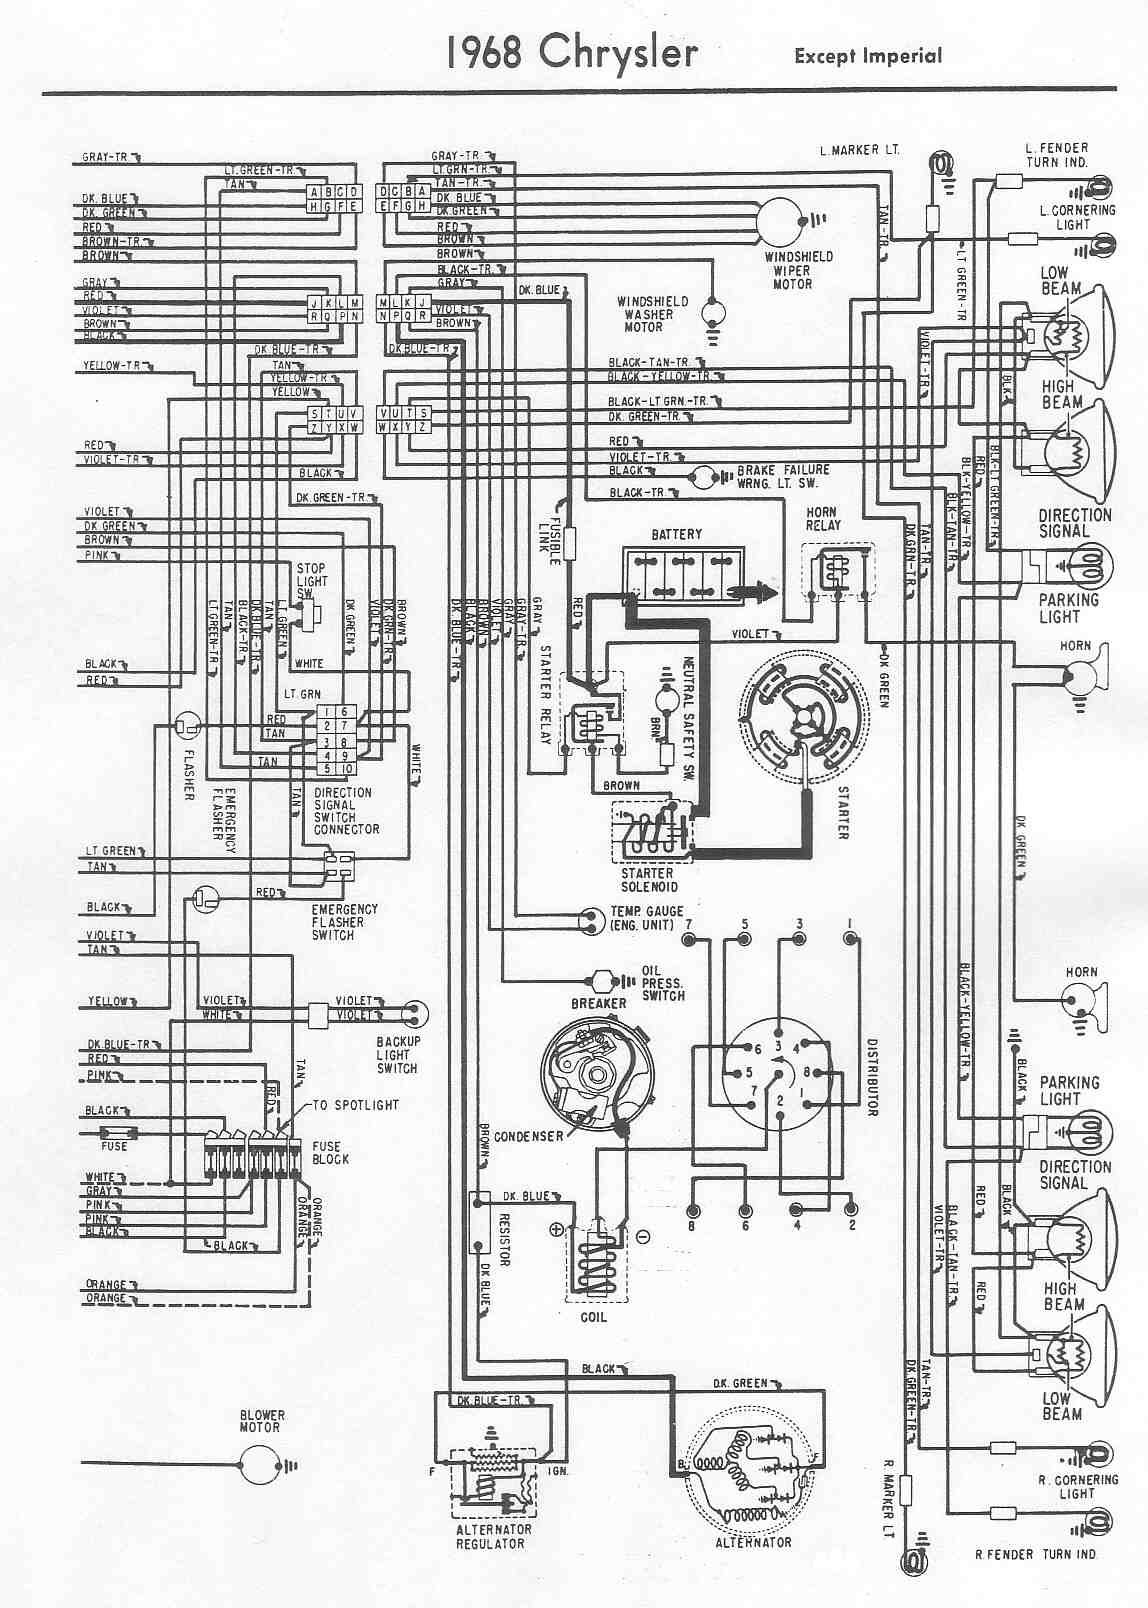 [SCHEMATICS_4CA]  CHRYSLER - Car PDF Manual, Wiring Diagram & Fault Codes DTC | 1966 Chrysler 300 Electric Window Wiring Diagram |  | automotive-manuals.net